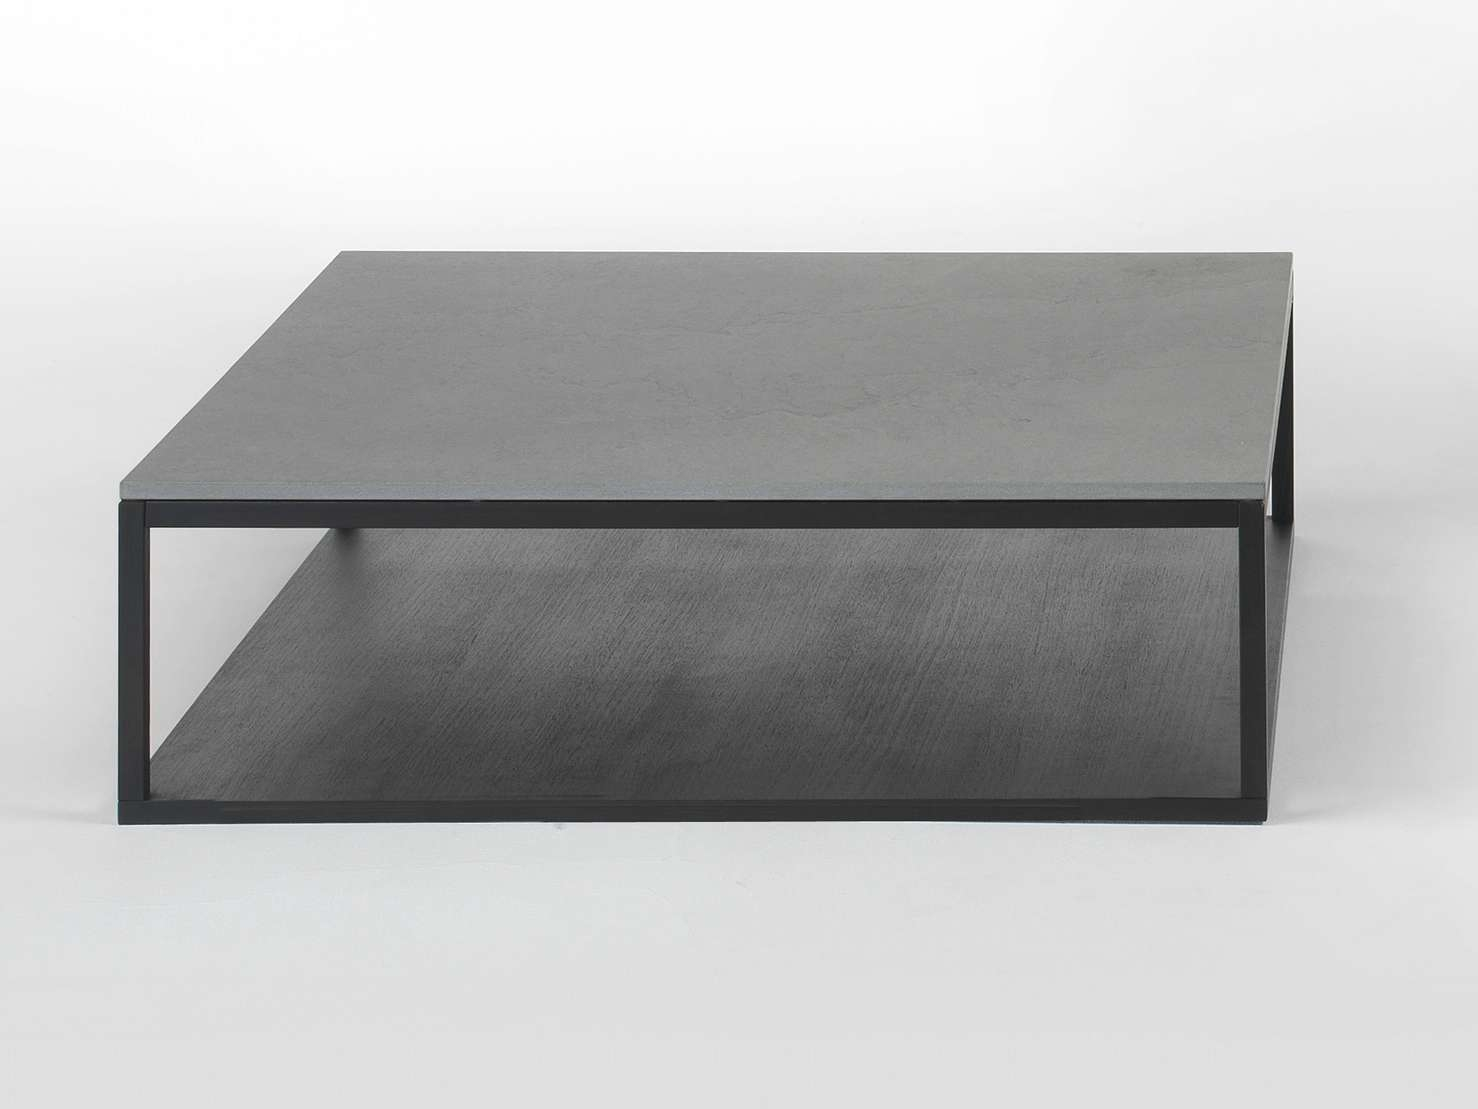 Aleksil Throughout Widely Used Low Level Coffee Tables (View 2 of 20)